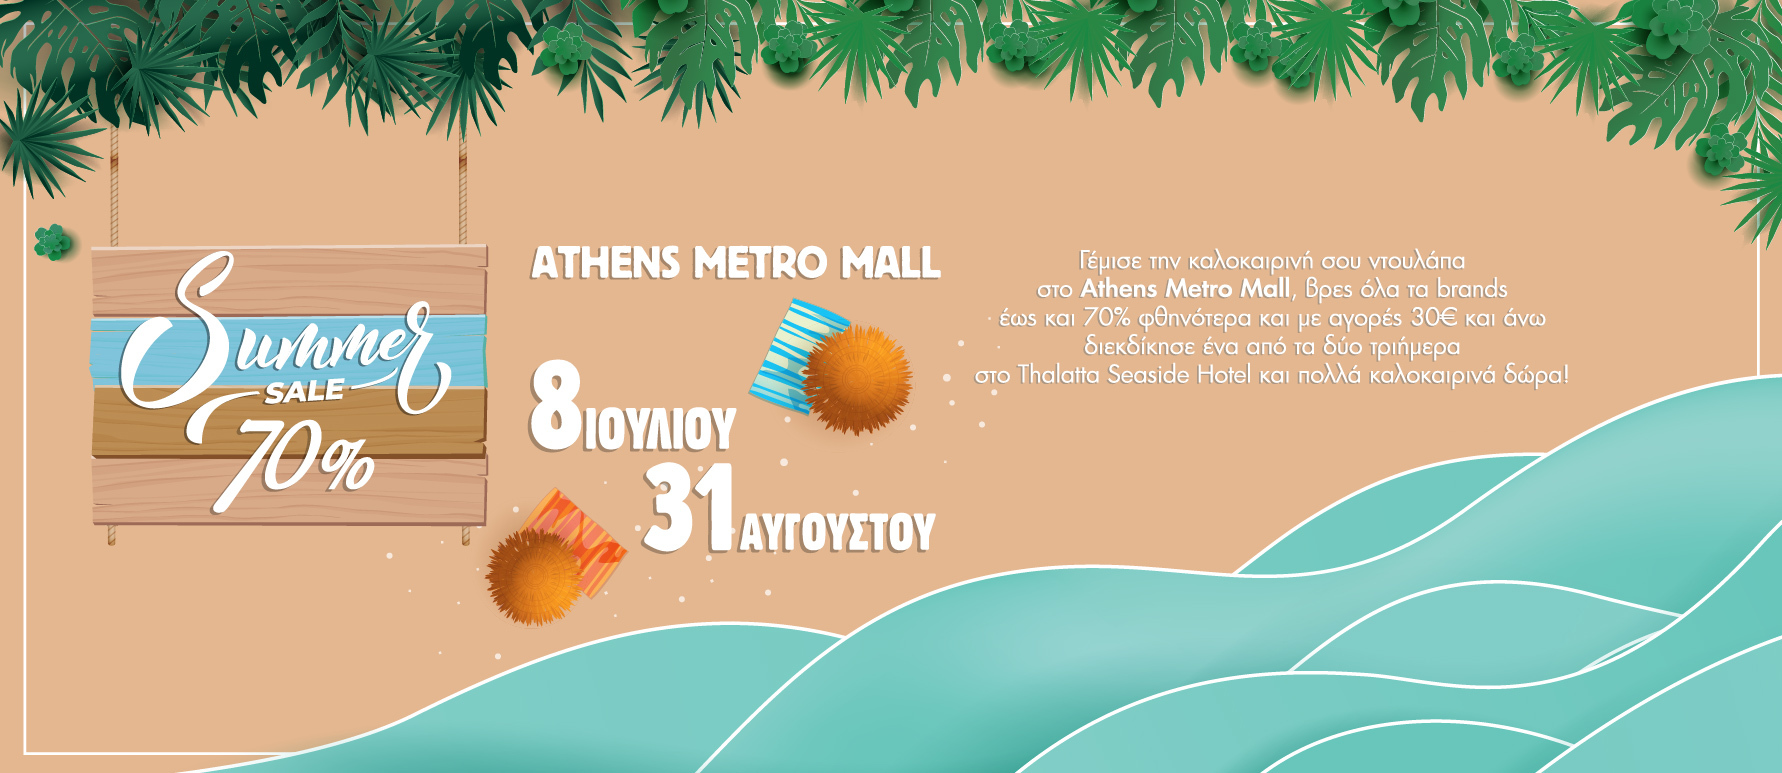 f028f2068f0 athensmetromall.gr – Home